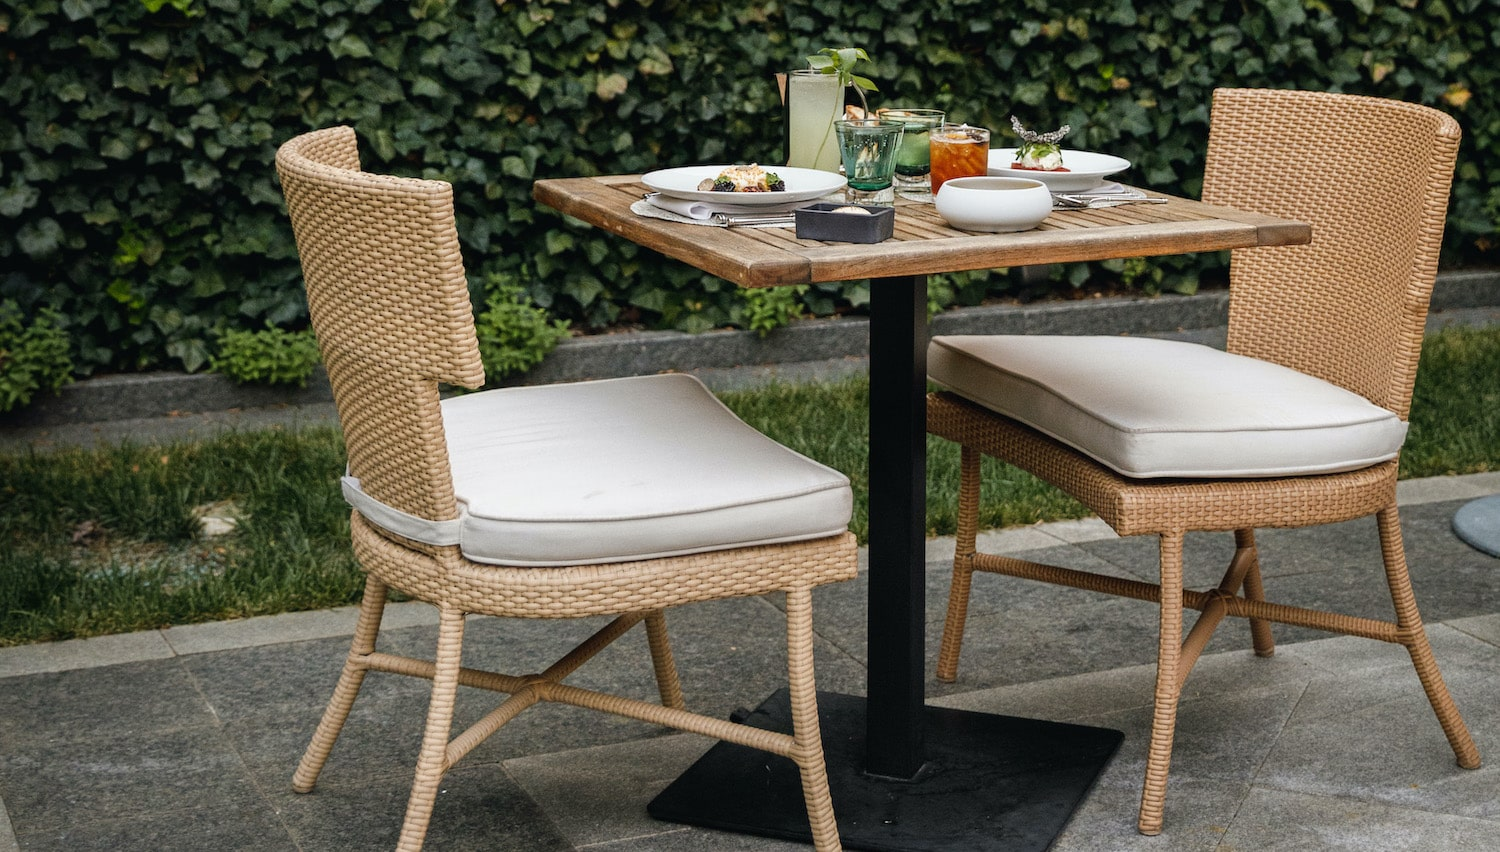 Outdoor table set for two at Magdalena restaurant.